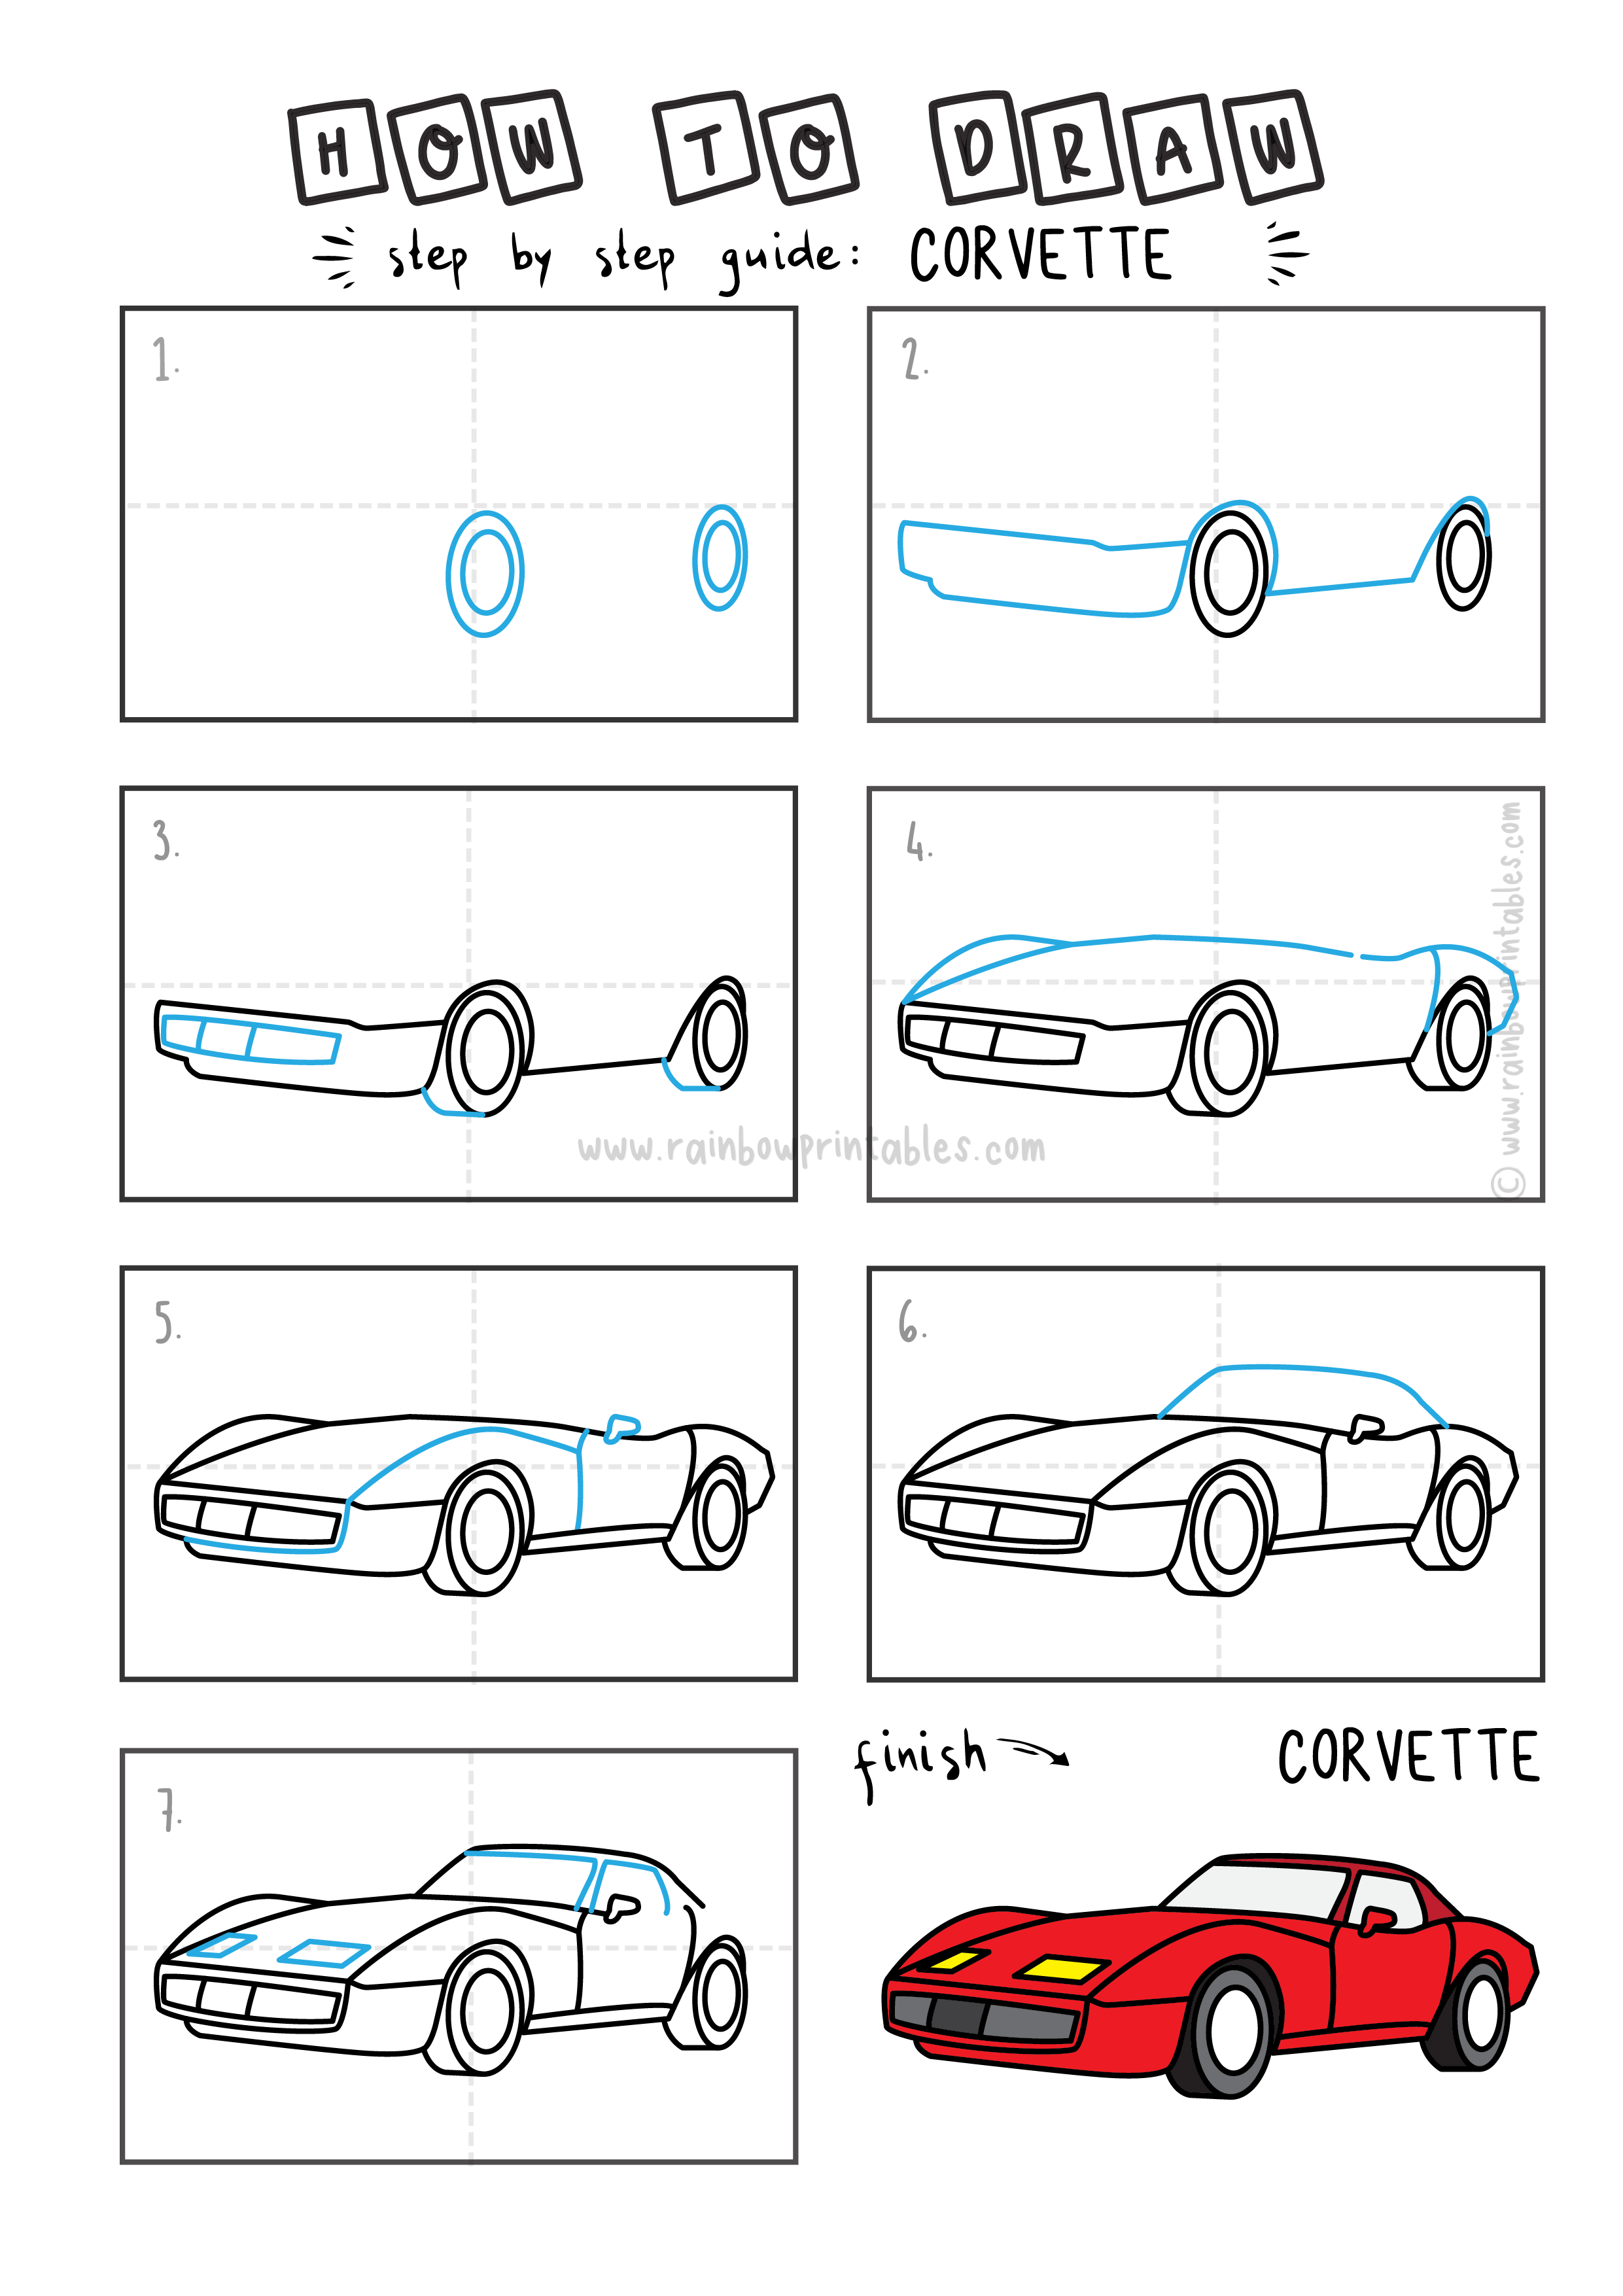 HOW TO DRAW EASY FOR KIDS STEP BY STEP CORVETTE CAR RED TRANSPORTATION